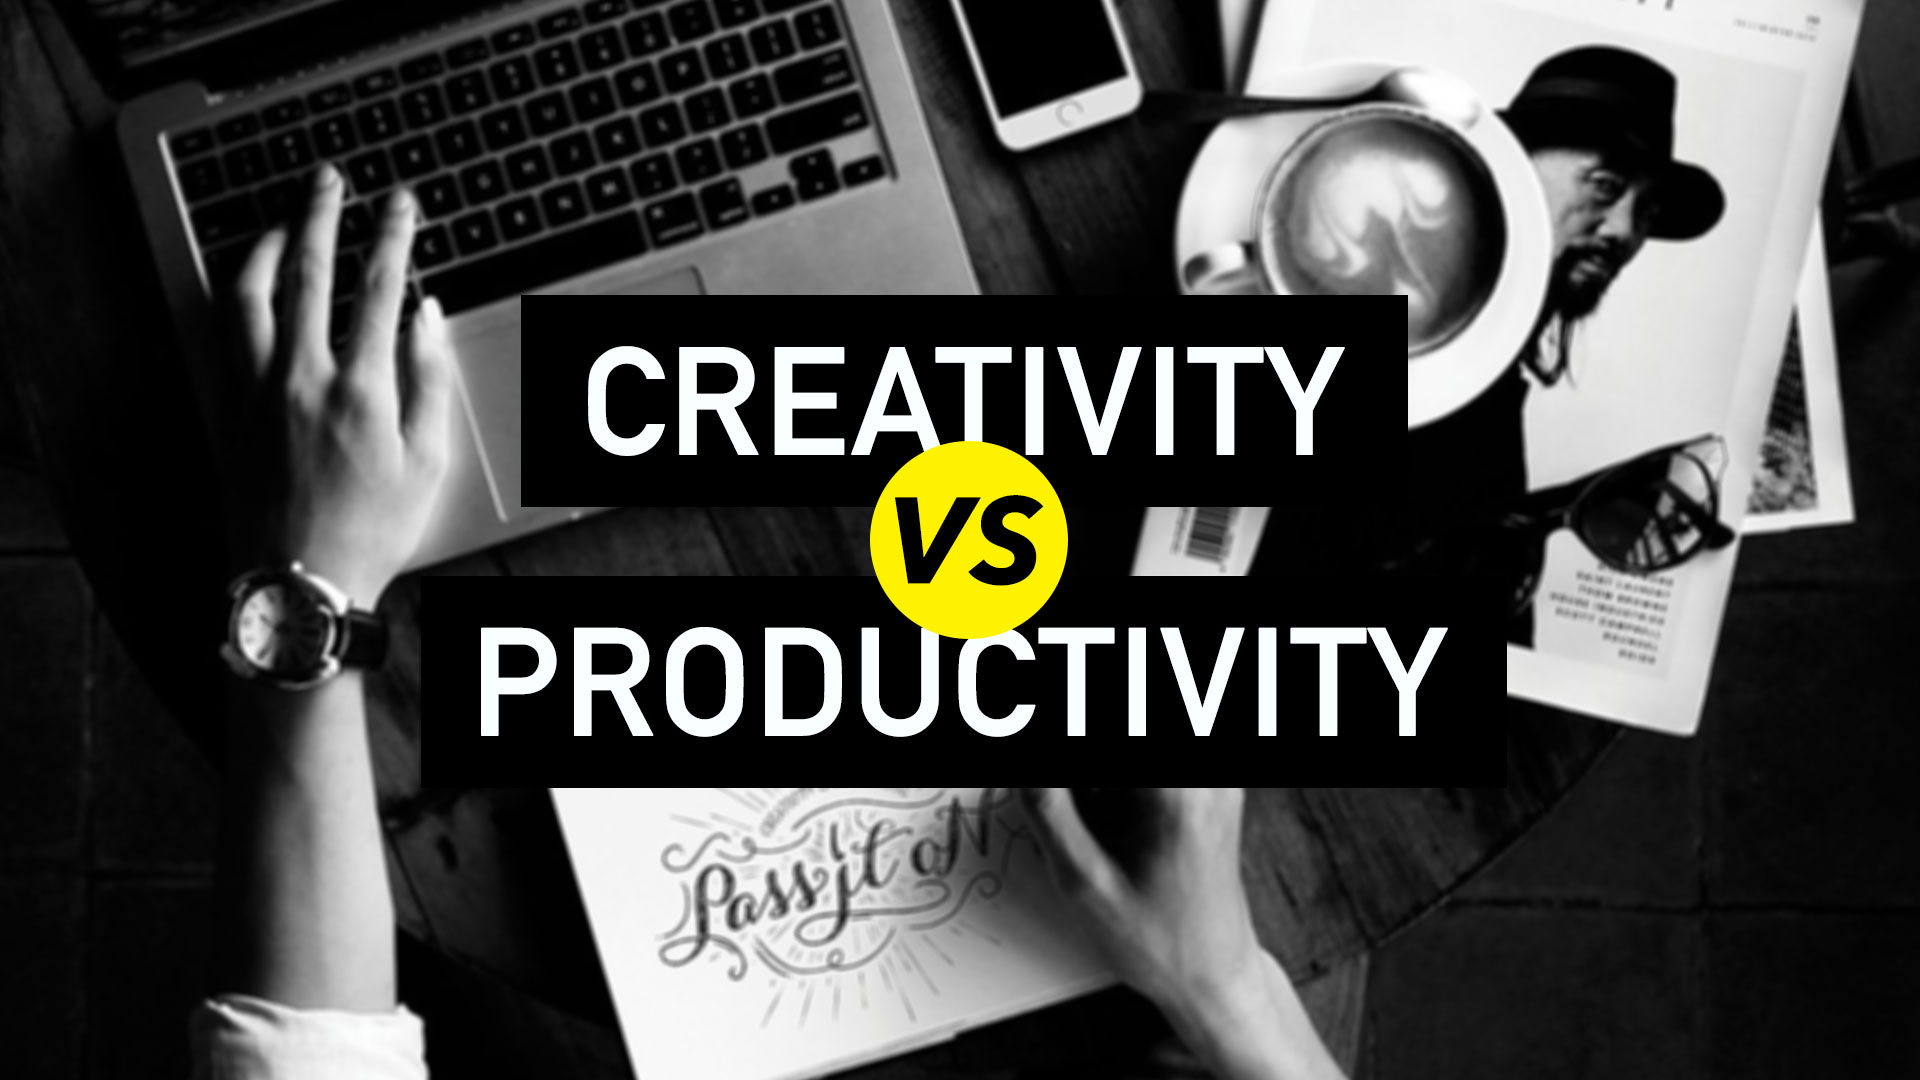 Creativity vs Productivity